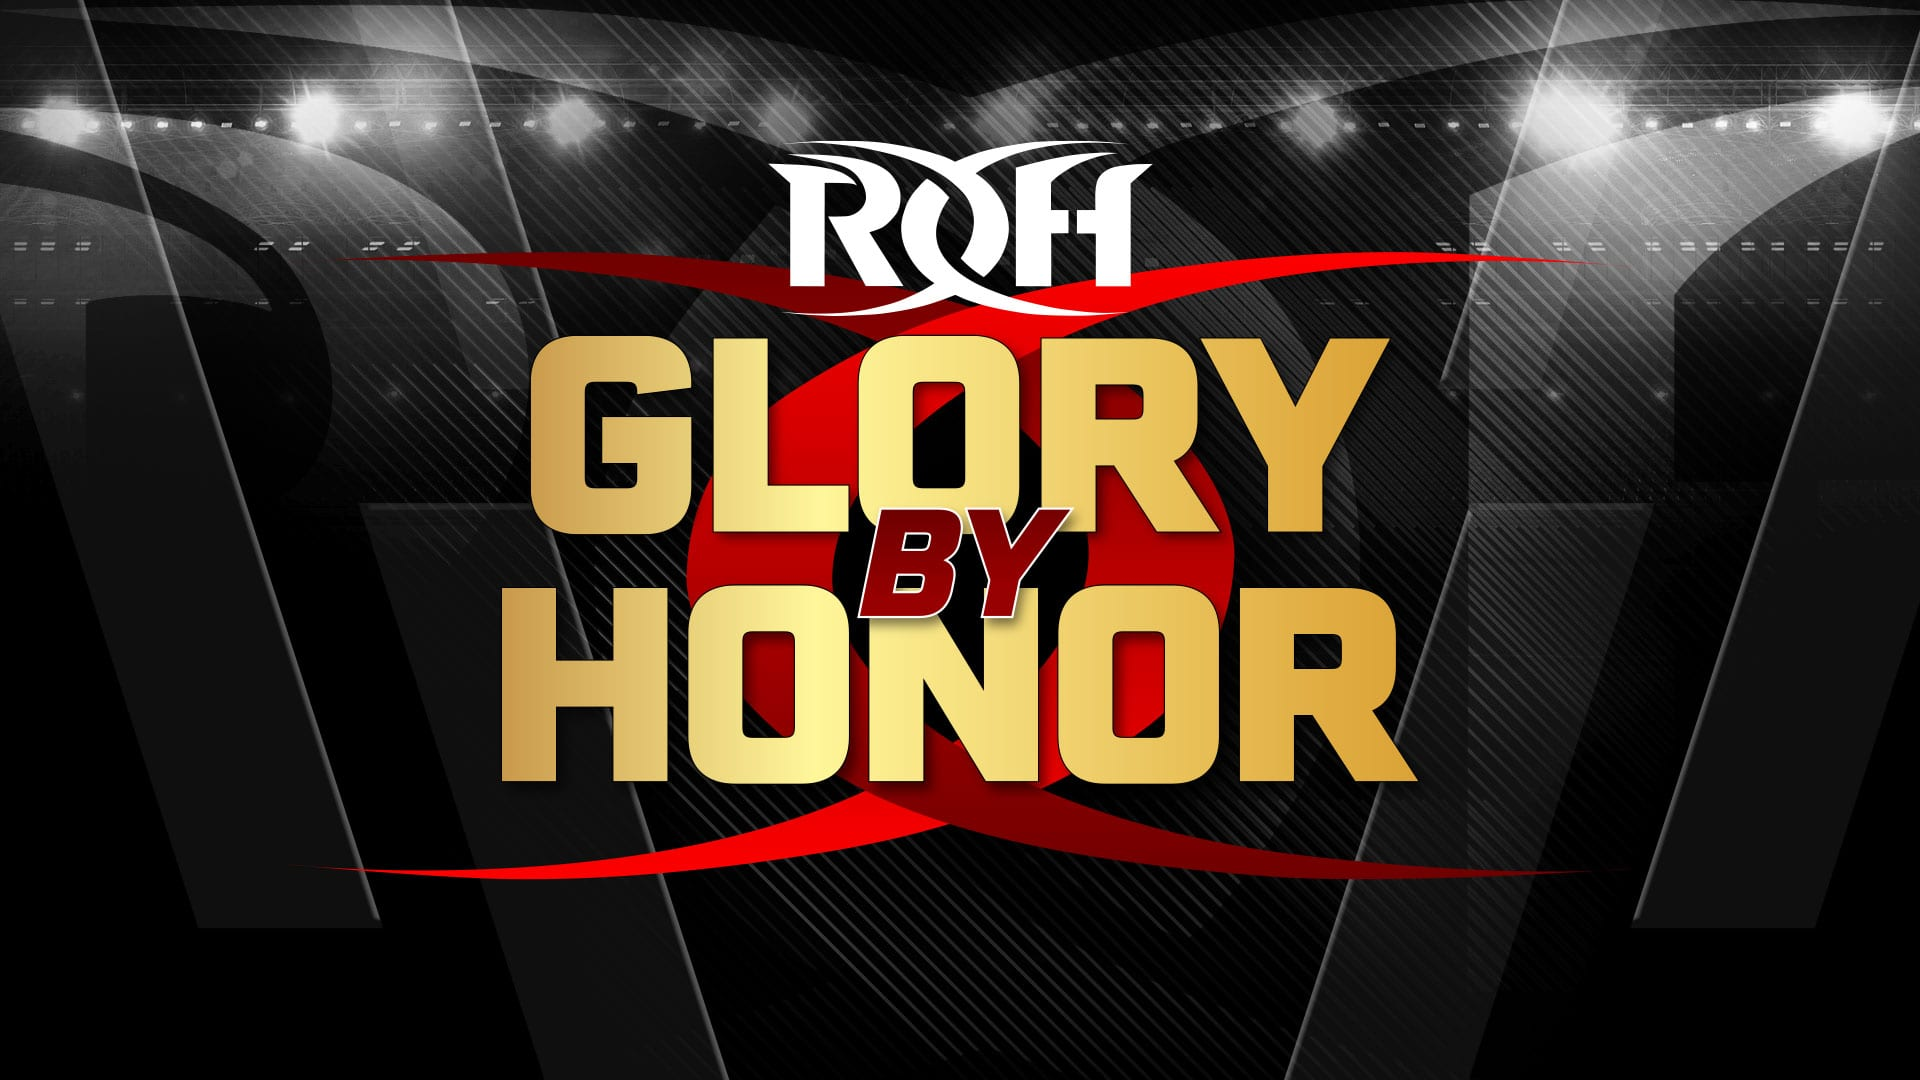 Chelsea Green To Make ROH Debut At Glory By Honor